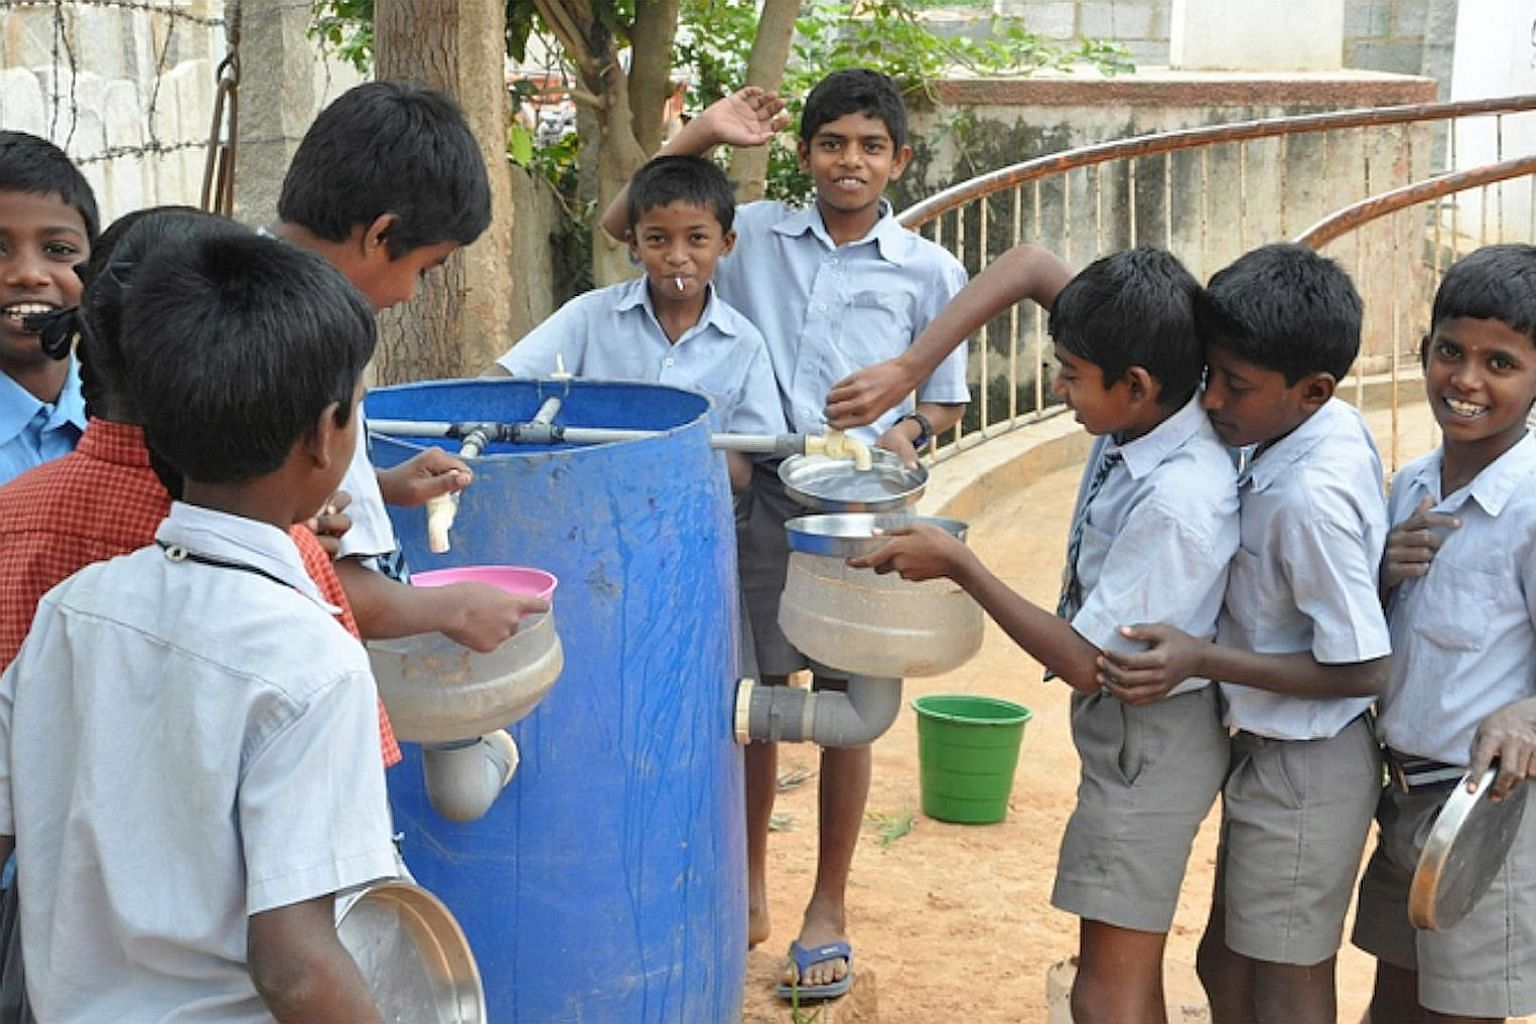 Children at the Muthur government school in India with a Reap Benefit low-cost device designed to re-use grey water so as to address the problem of water shortages. Reap Benefit gets schoolchildren to initiate innovative, actionable solutions to Indi